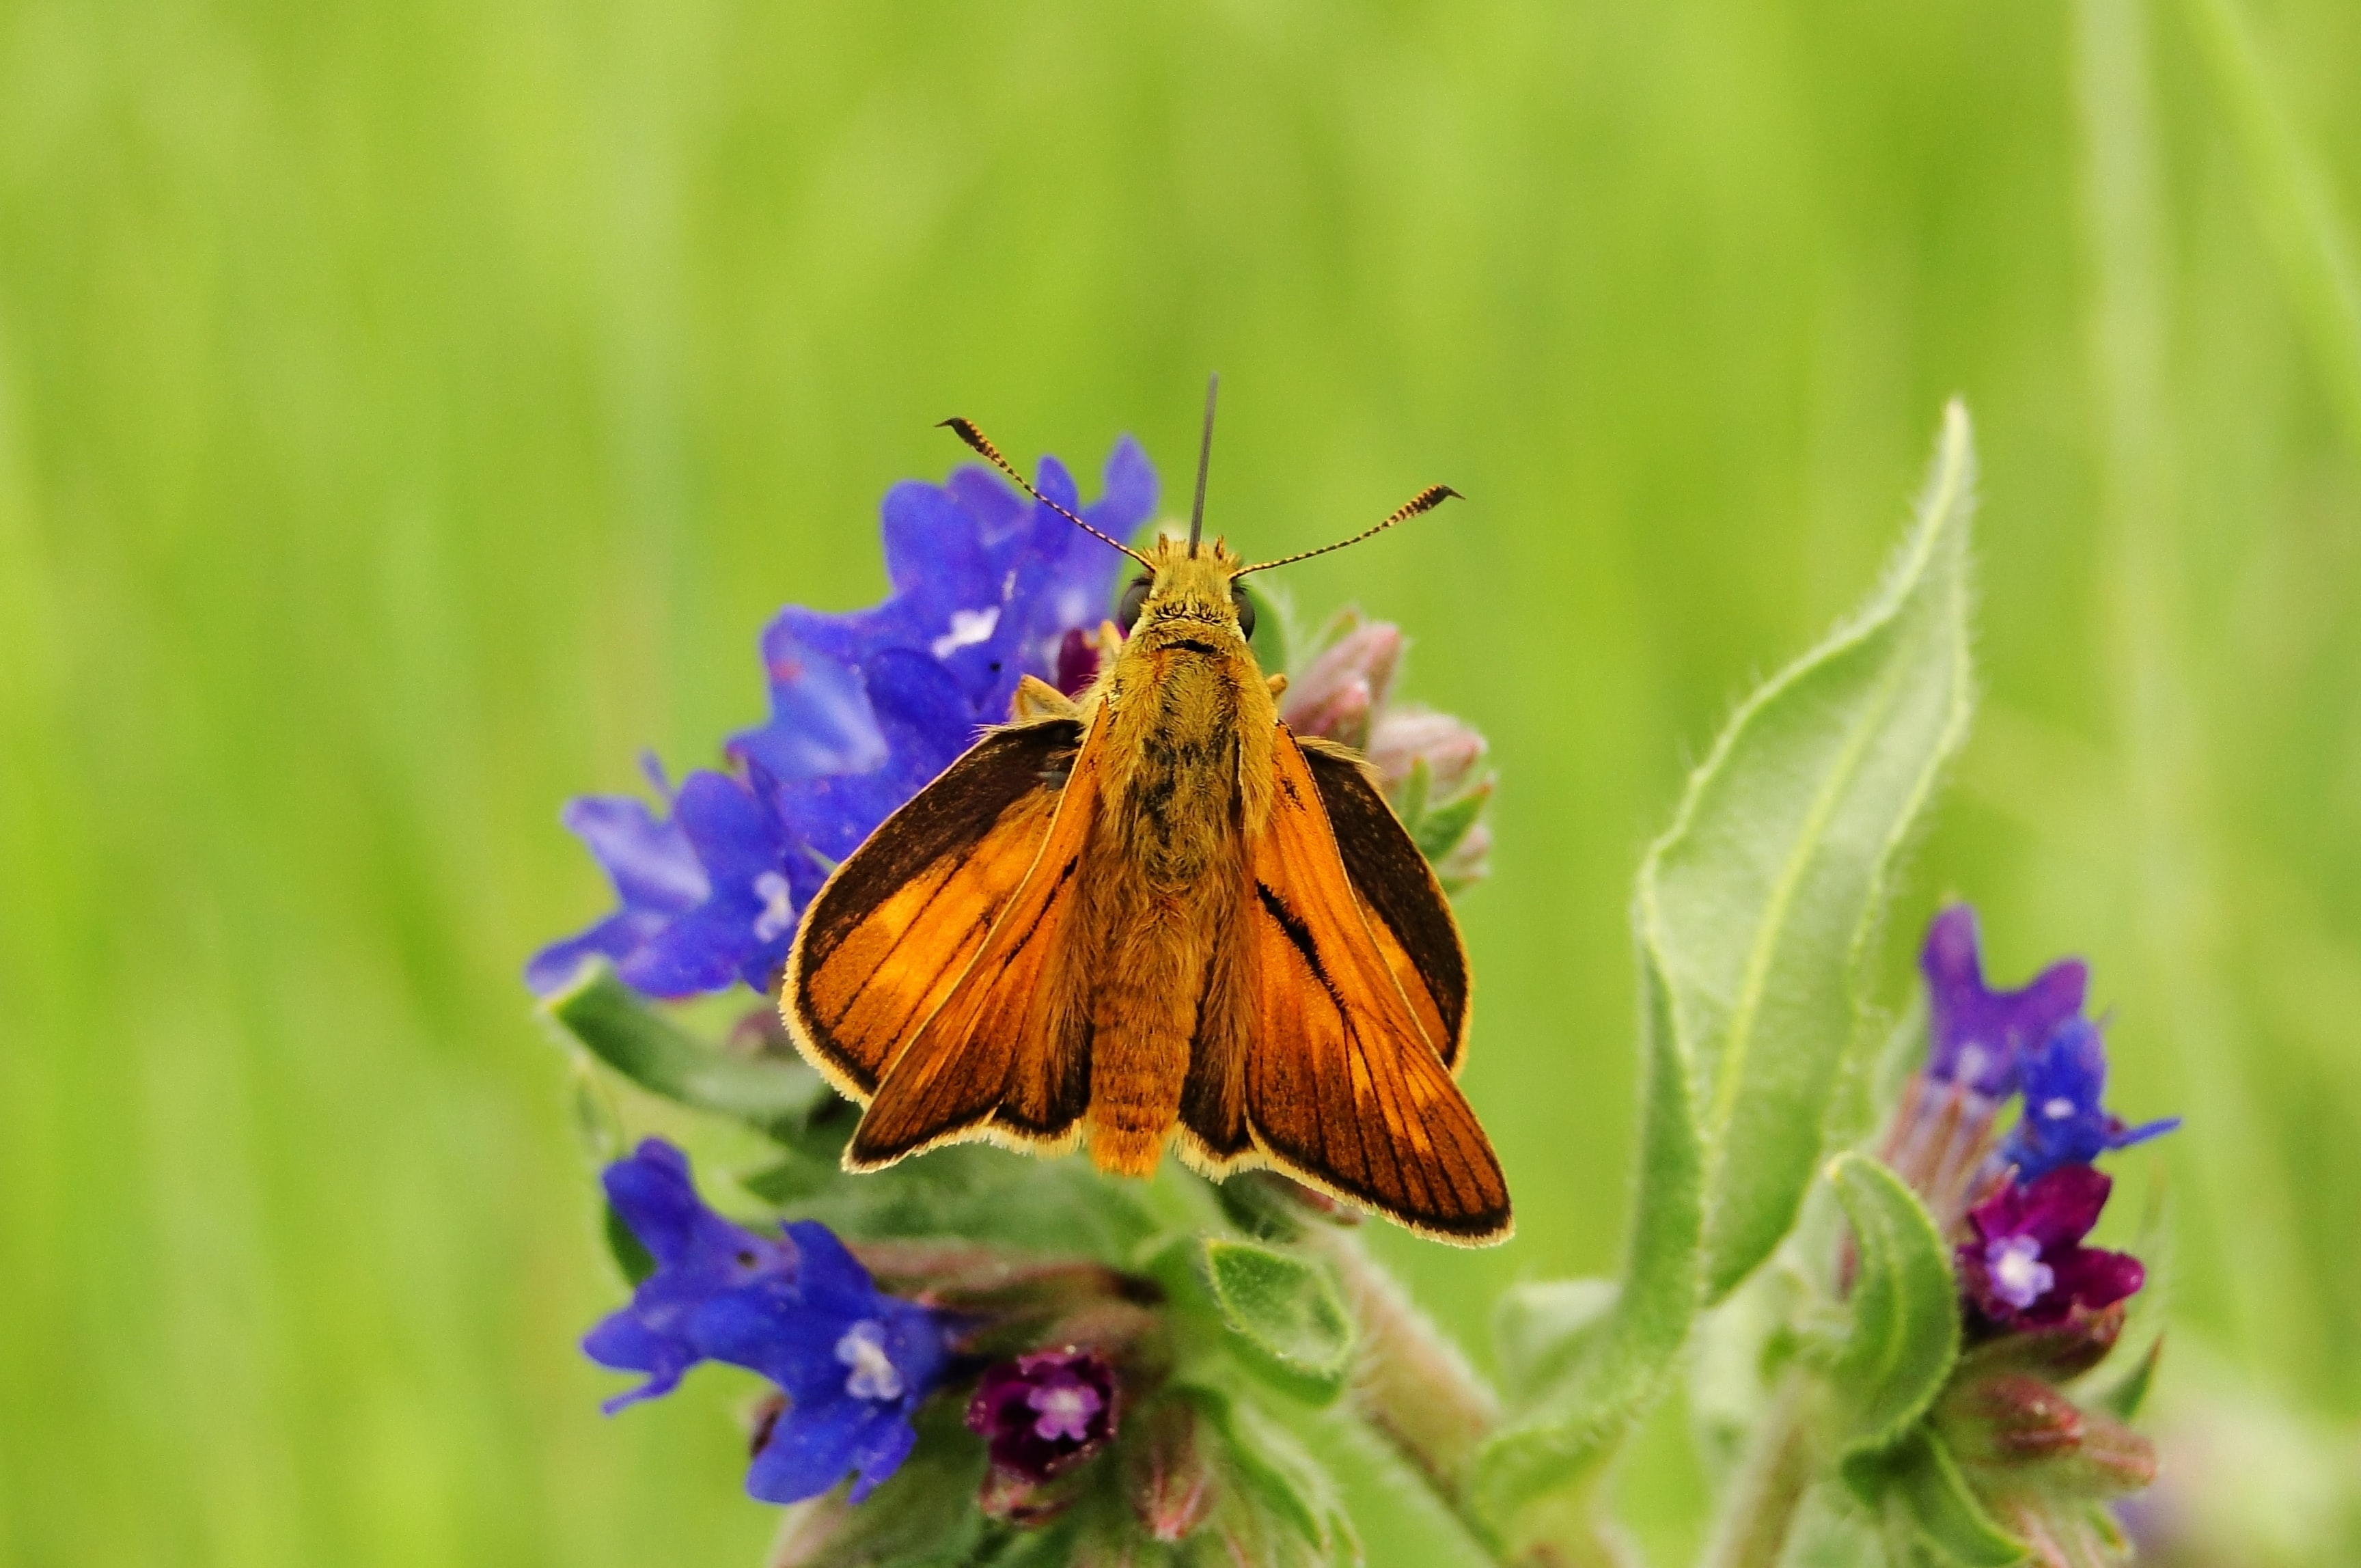 brown and black moth perched on purple flower